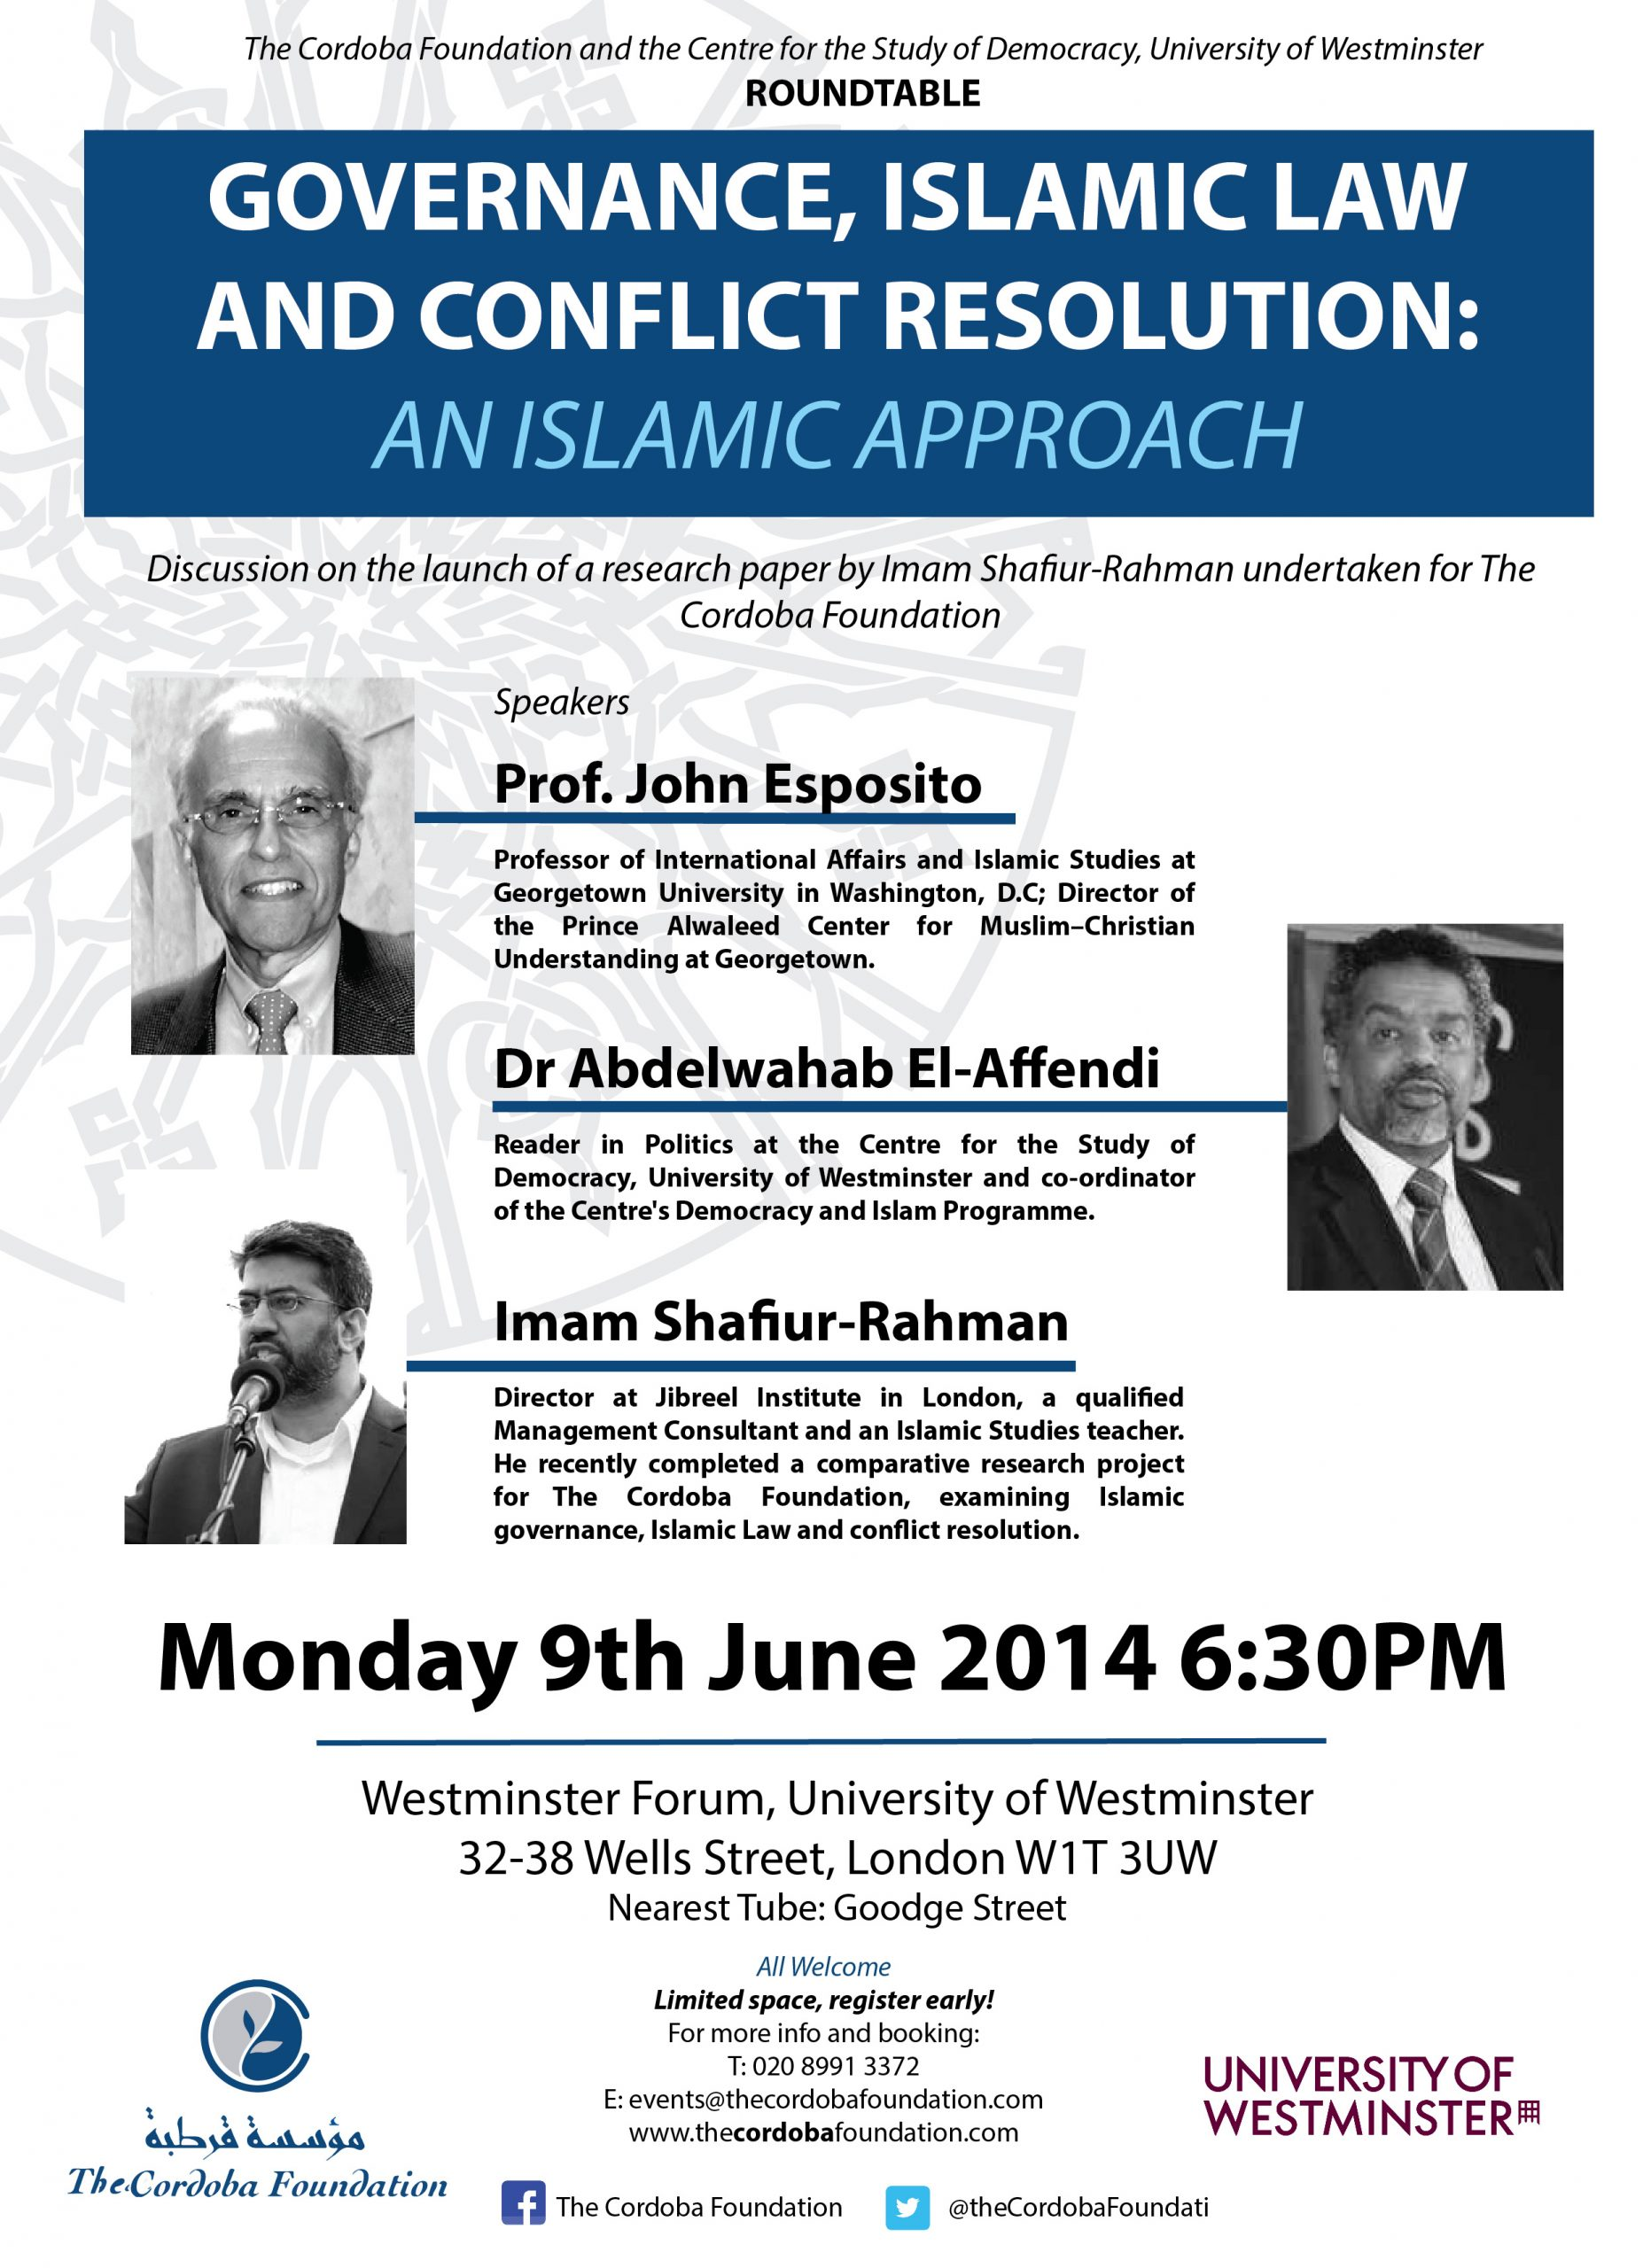 Roundtable: Governance, Islamic Law and Conflict Resolution: An Islamic Approach